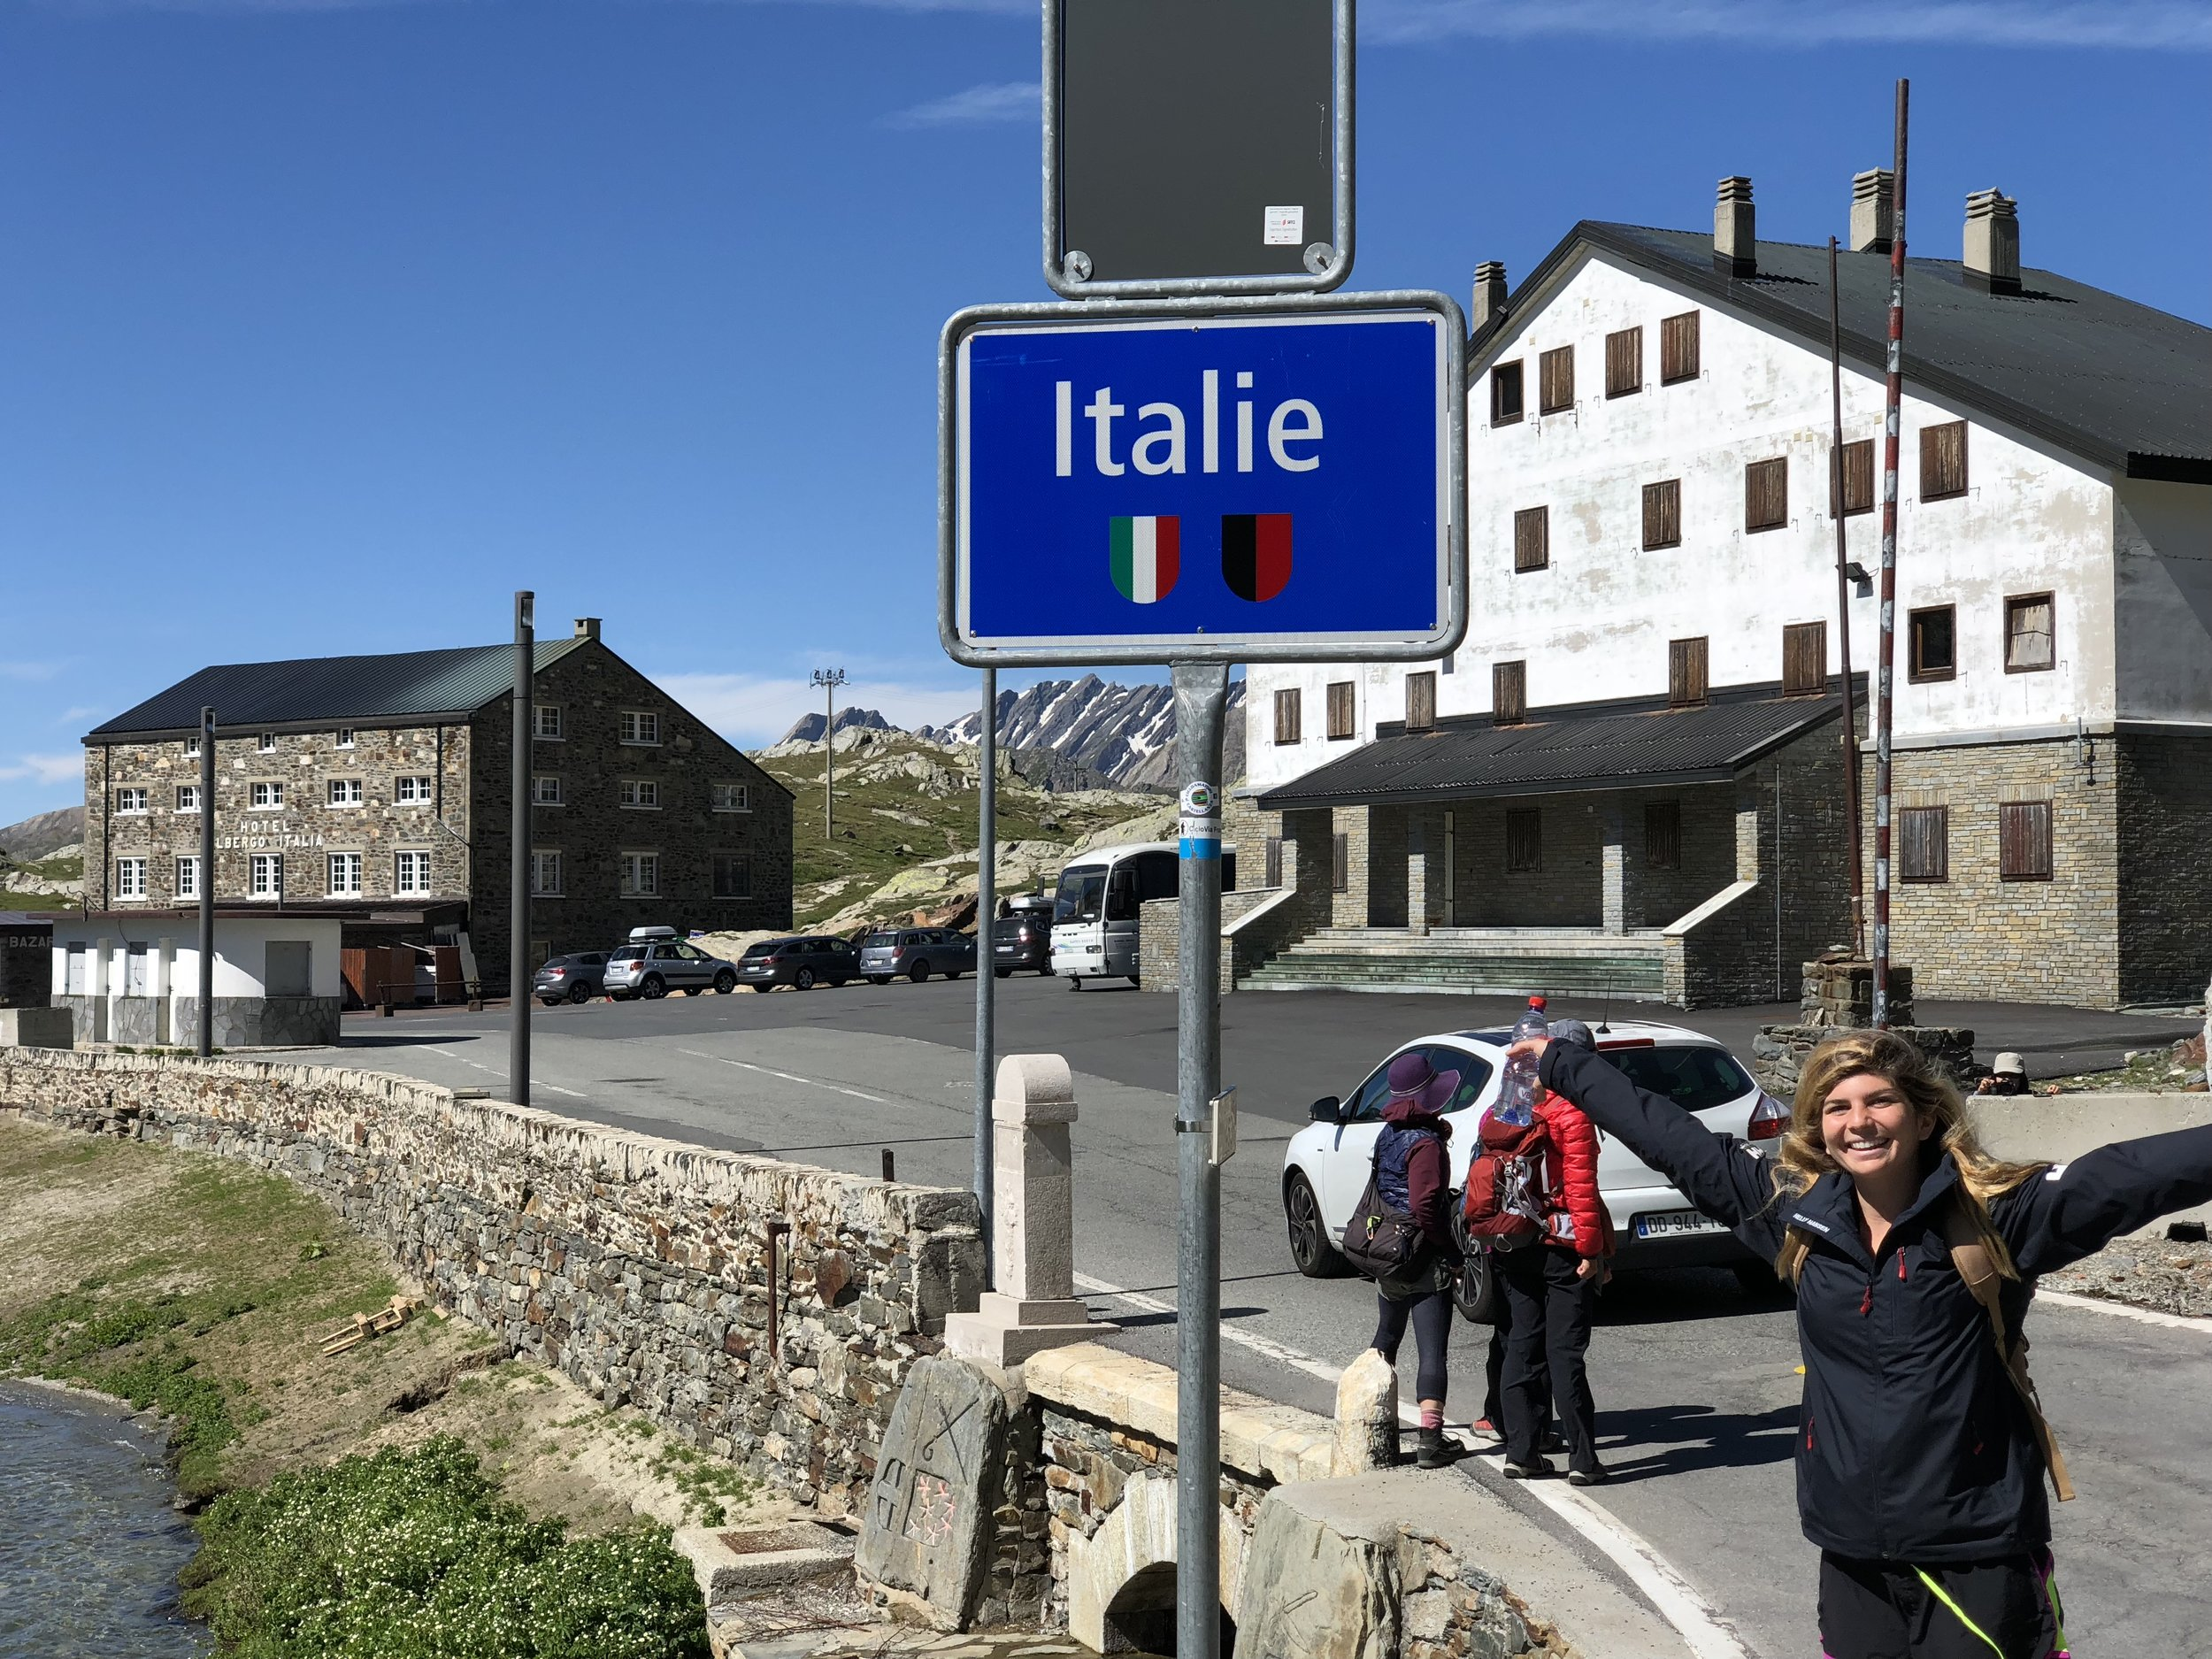 My back kept spasming as I picked my way along the path. I was lucky to follow another Pilgrim out of the city, also 40 days out from Rome and hurting. I don't know if I would have attempted walking with pain solo, but it was important to me to cross into Italy on foot.